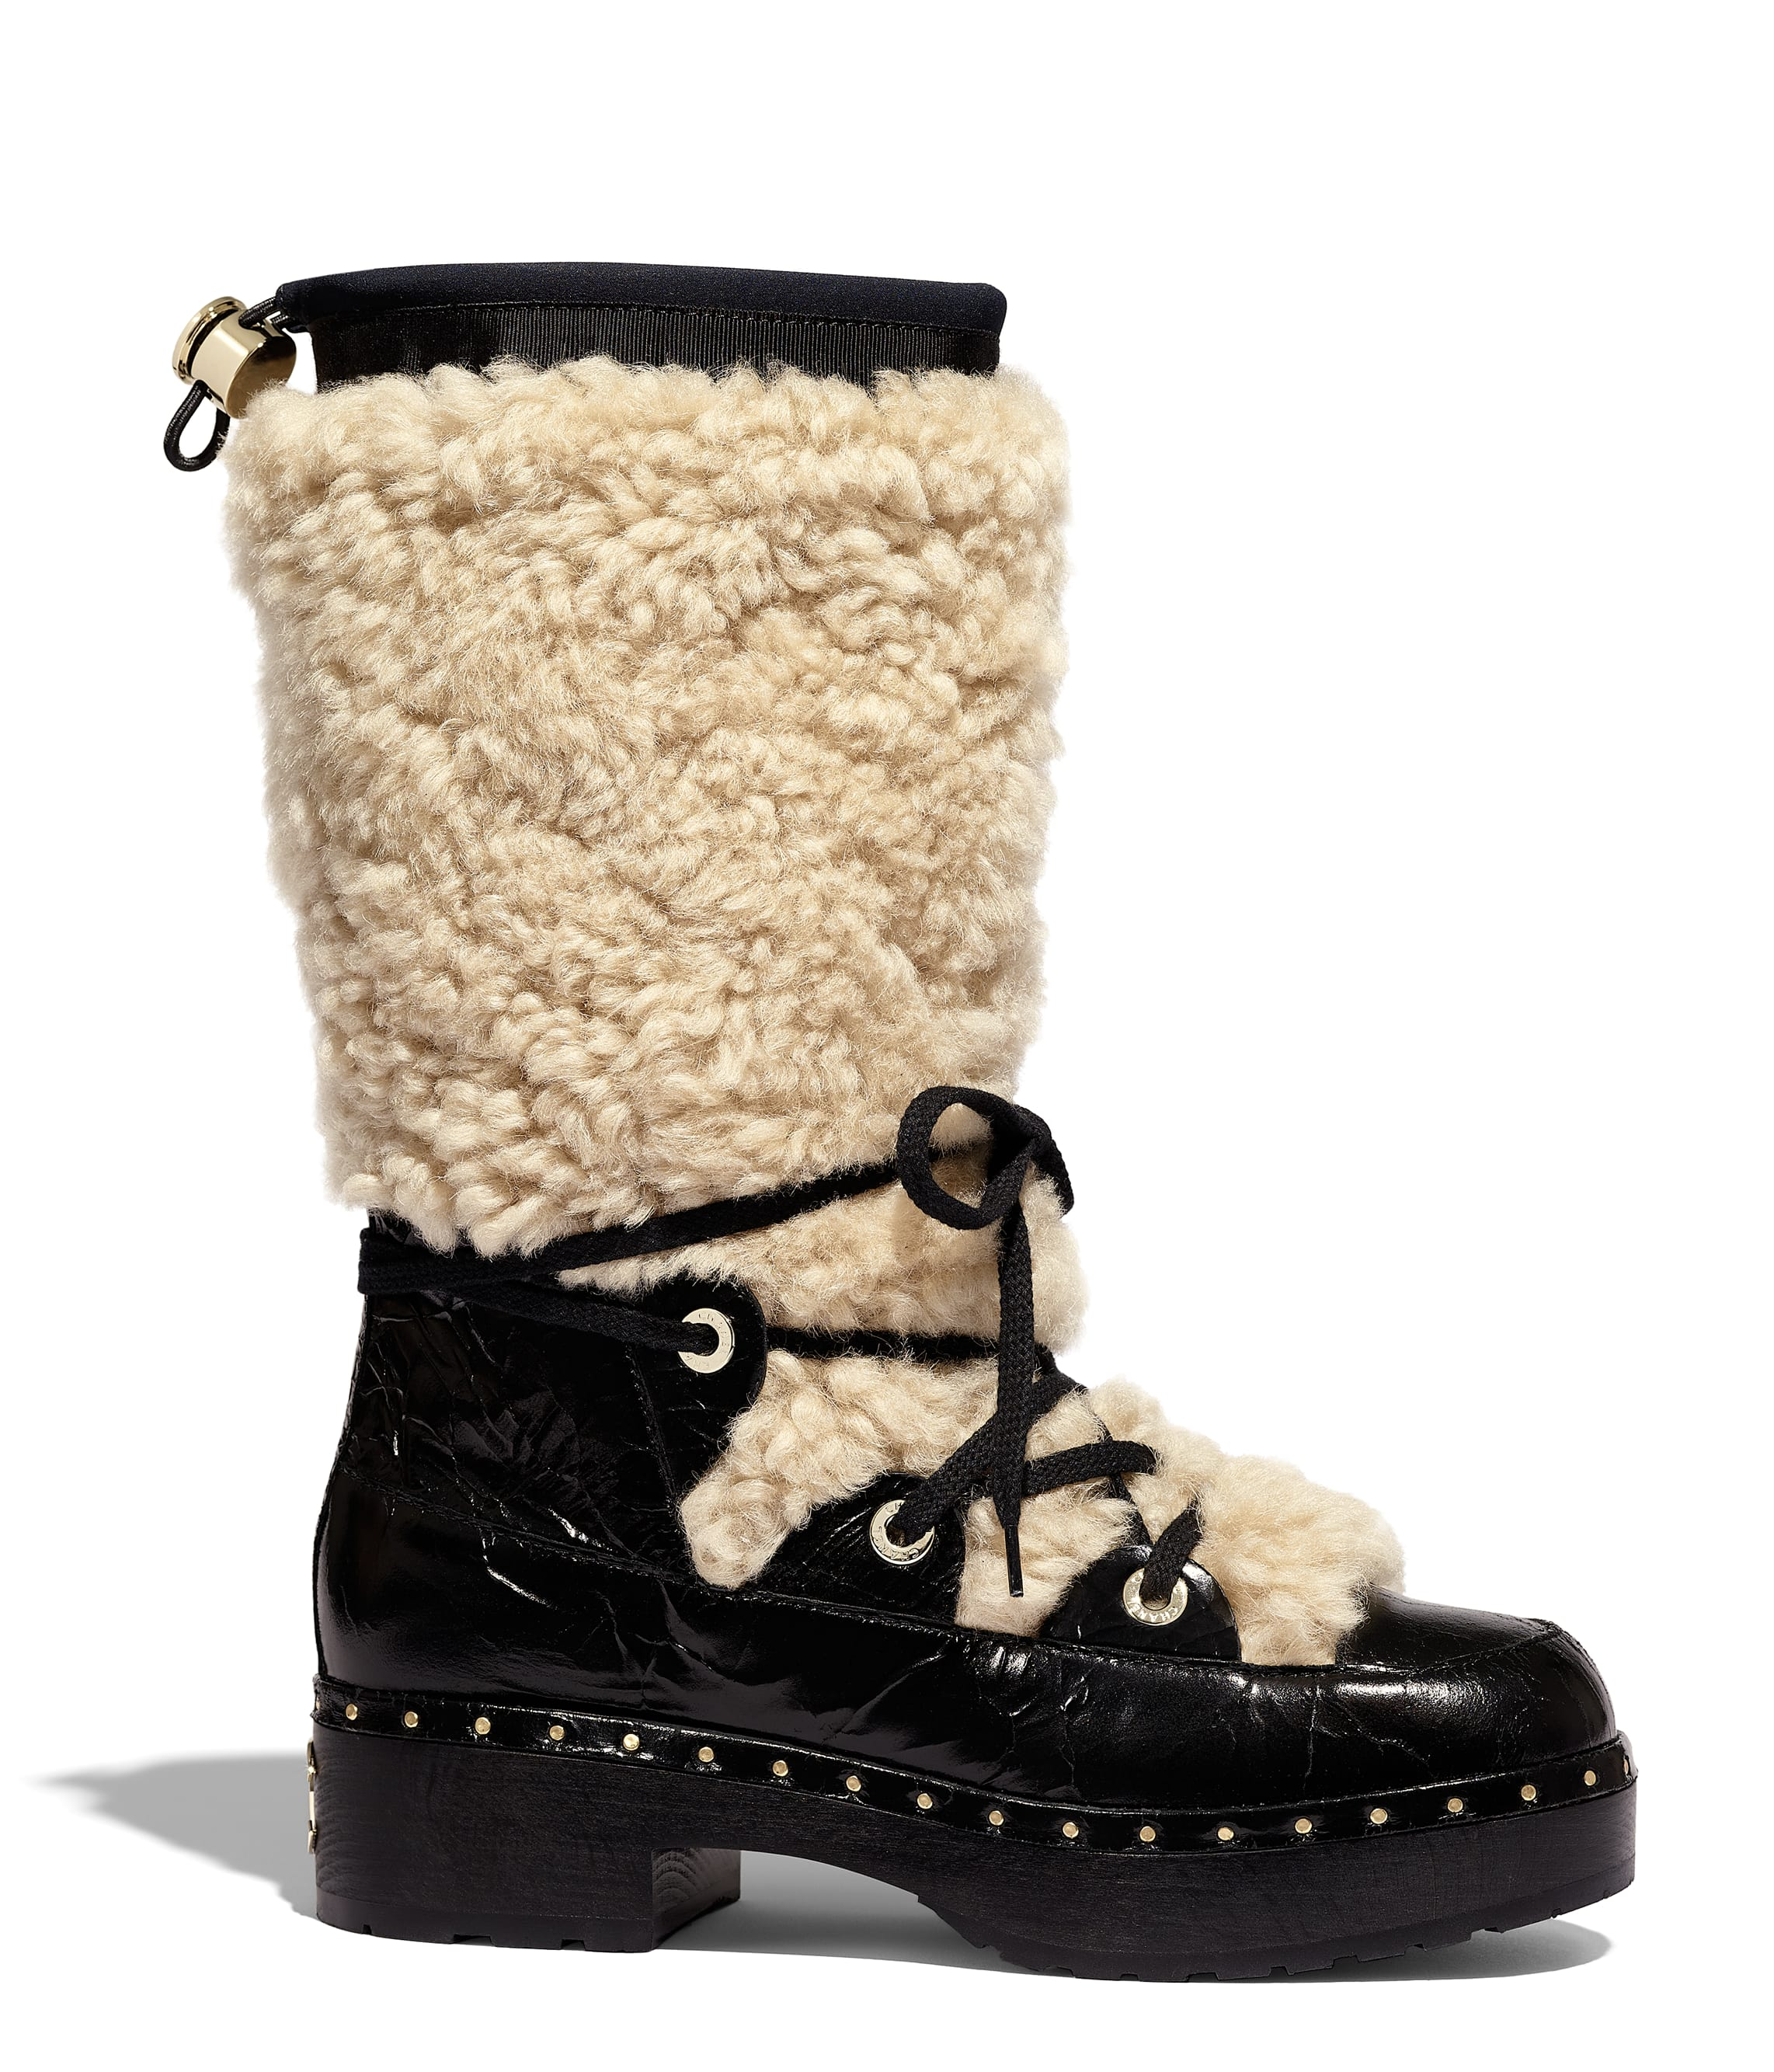 new concept 2bab6 81f3c Stiefel - Schuhe - CHANEL